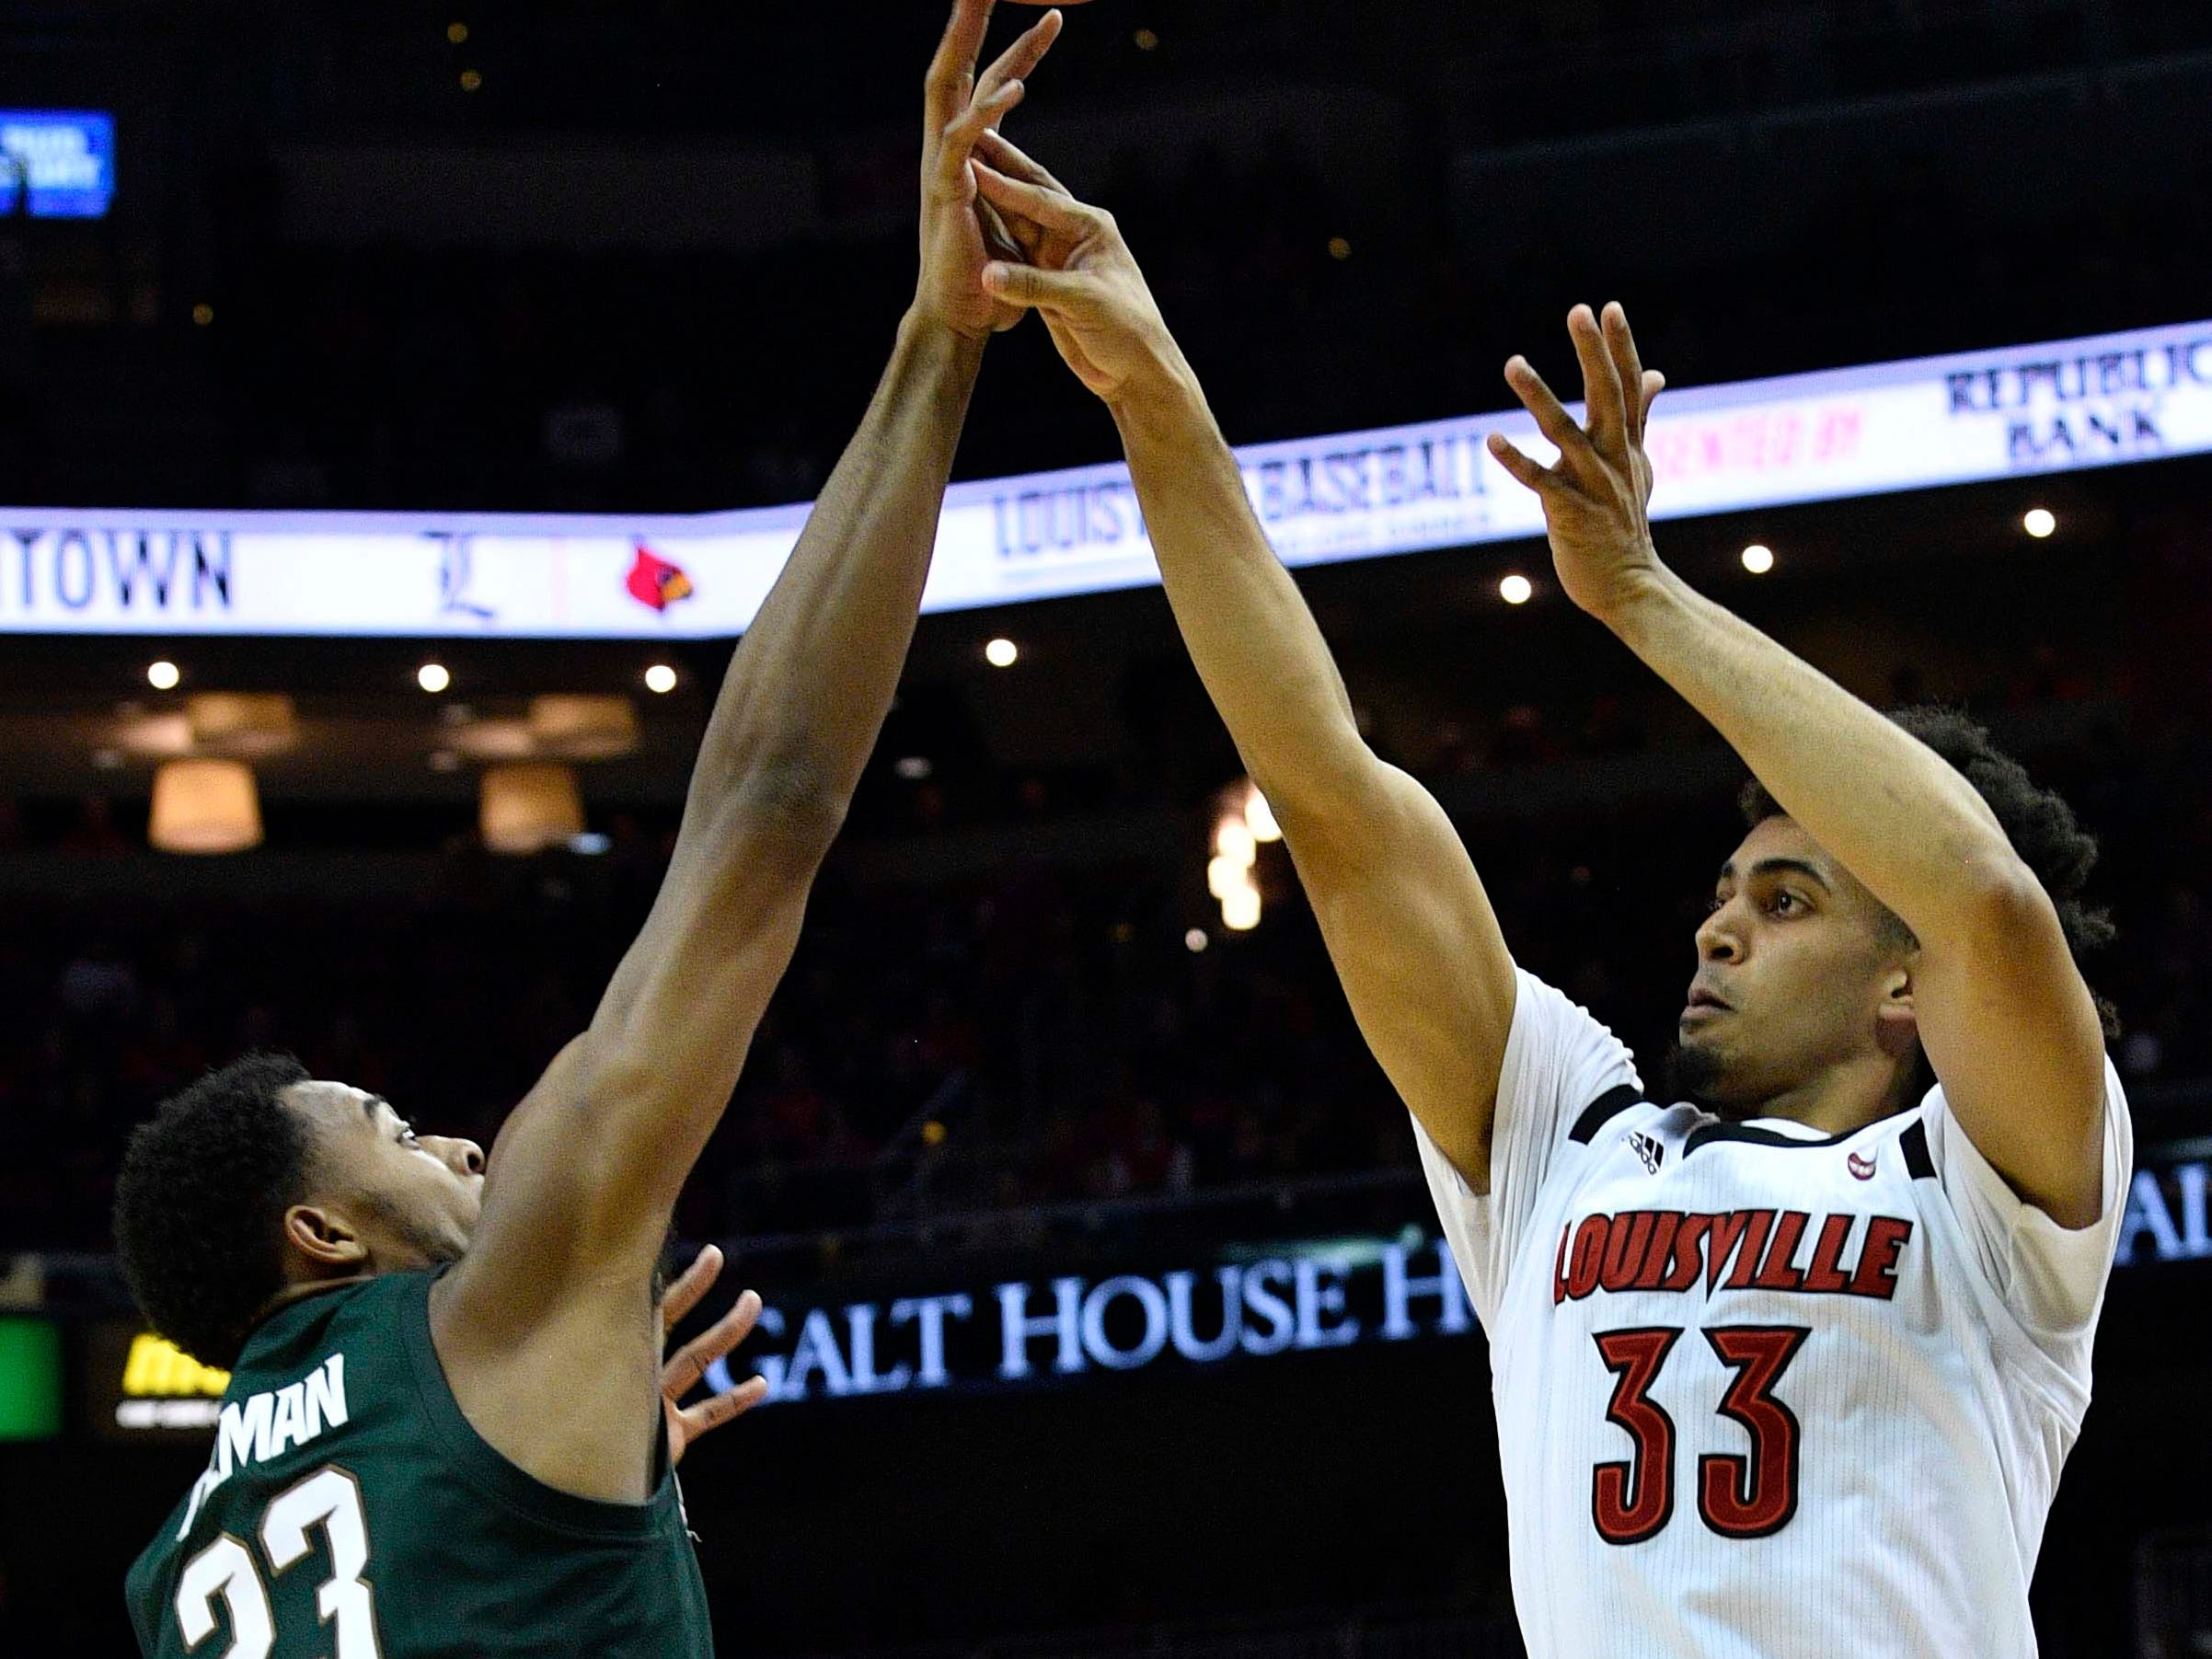 Michigan State Spartans forward Xavier Tillman (23) blocks the shot of Louisville Cardinals forward Jordan Nwora (33) during the second half at KFC Yum! Center. Louisville defeated Michigan State 82-78.